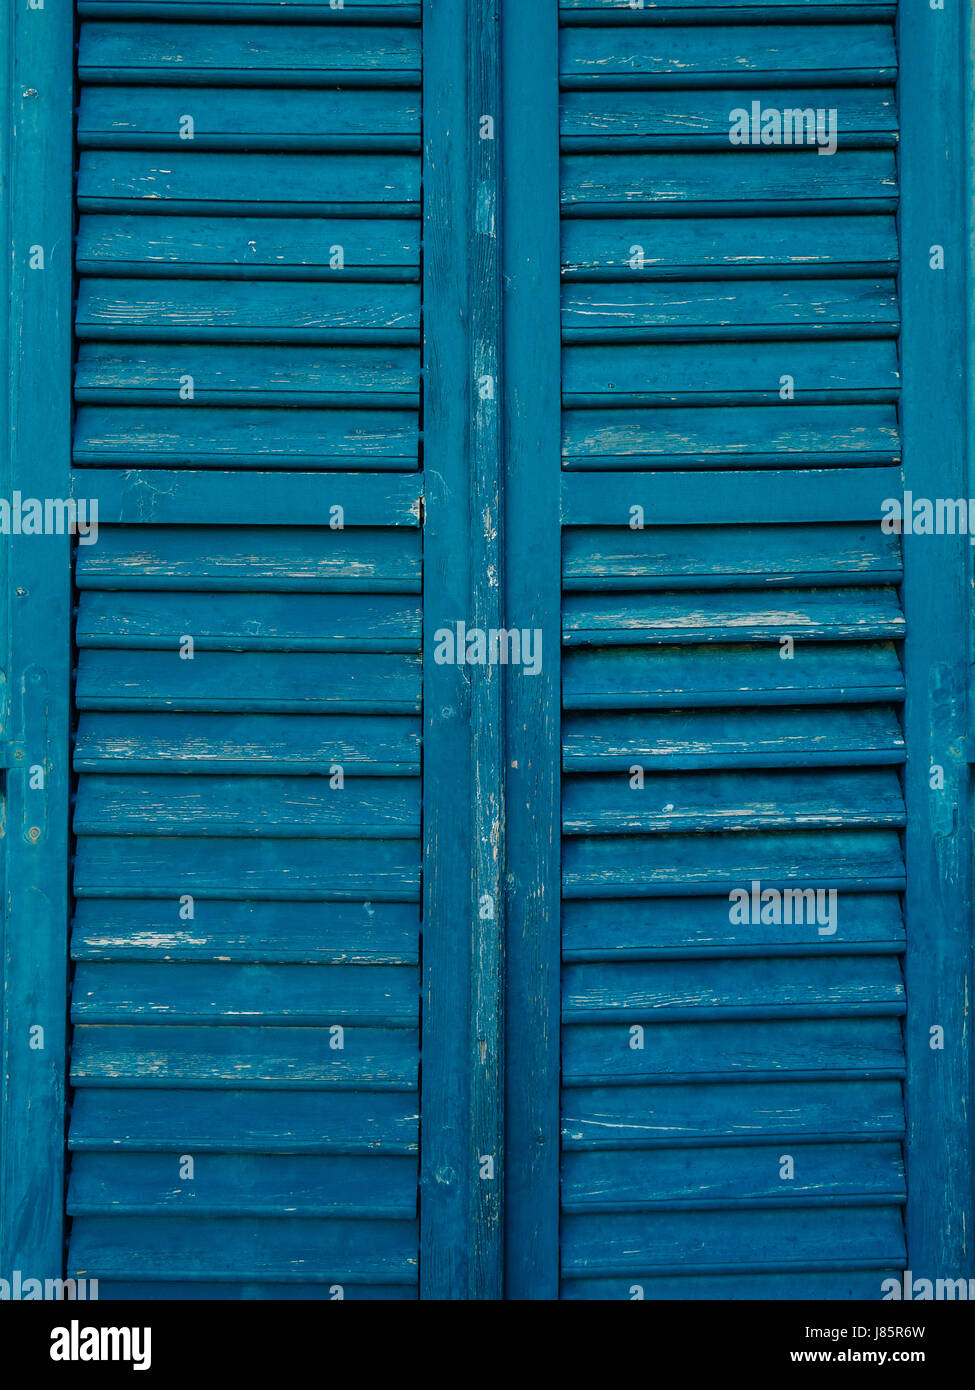 Wooden window shutters in blue. Antique homemade shutters on the windows.